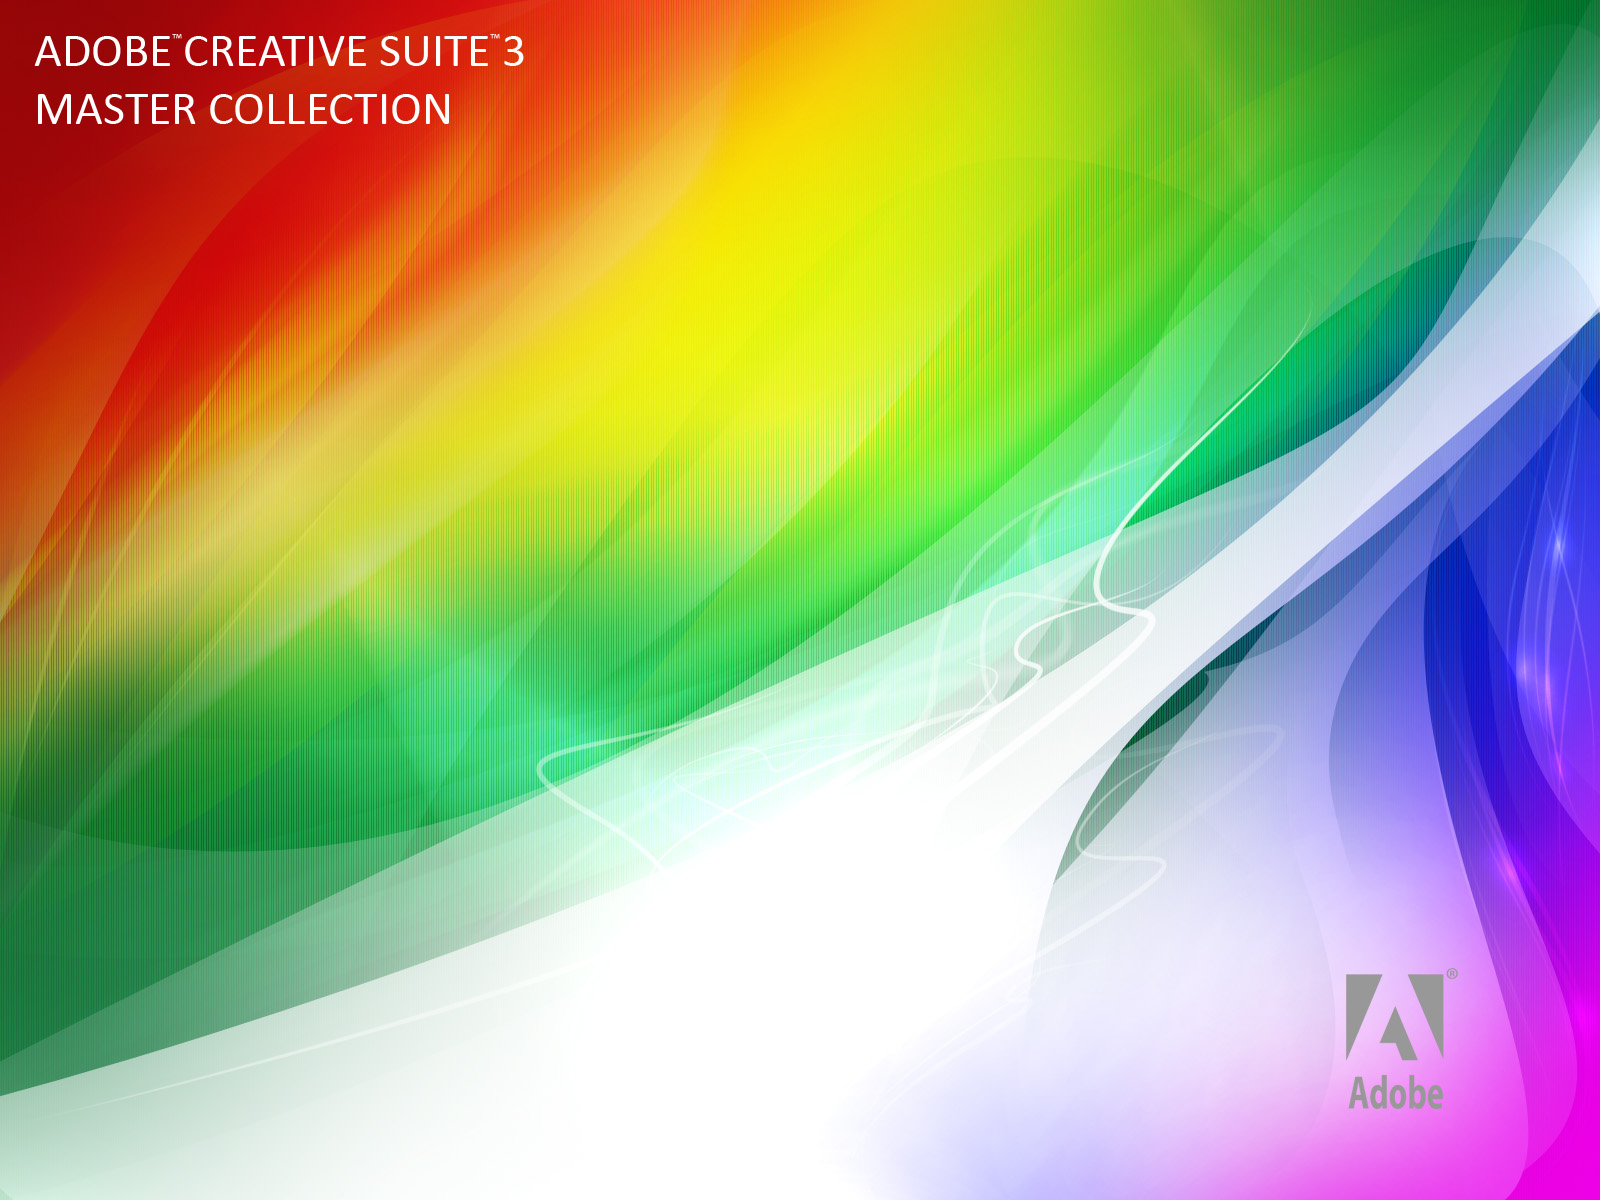 Adobe Creative Suite 3 Master Collection Mac